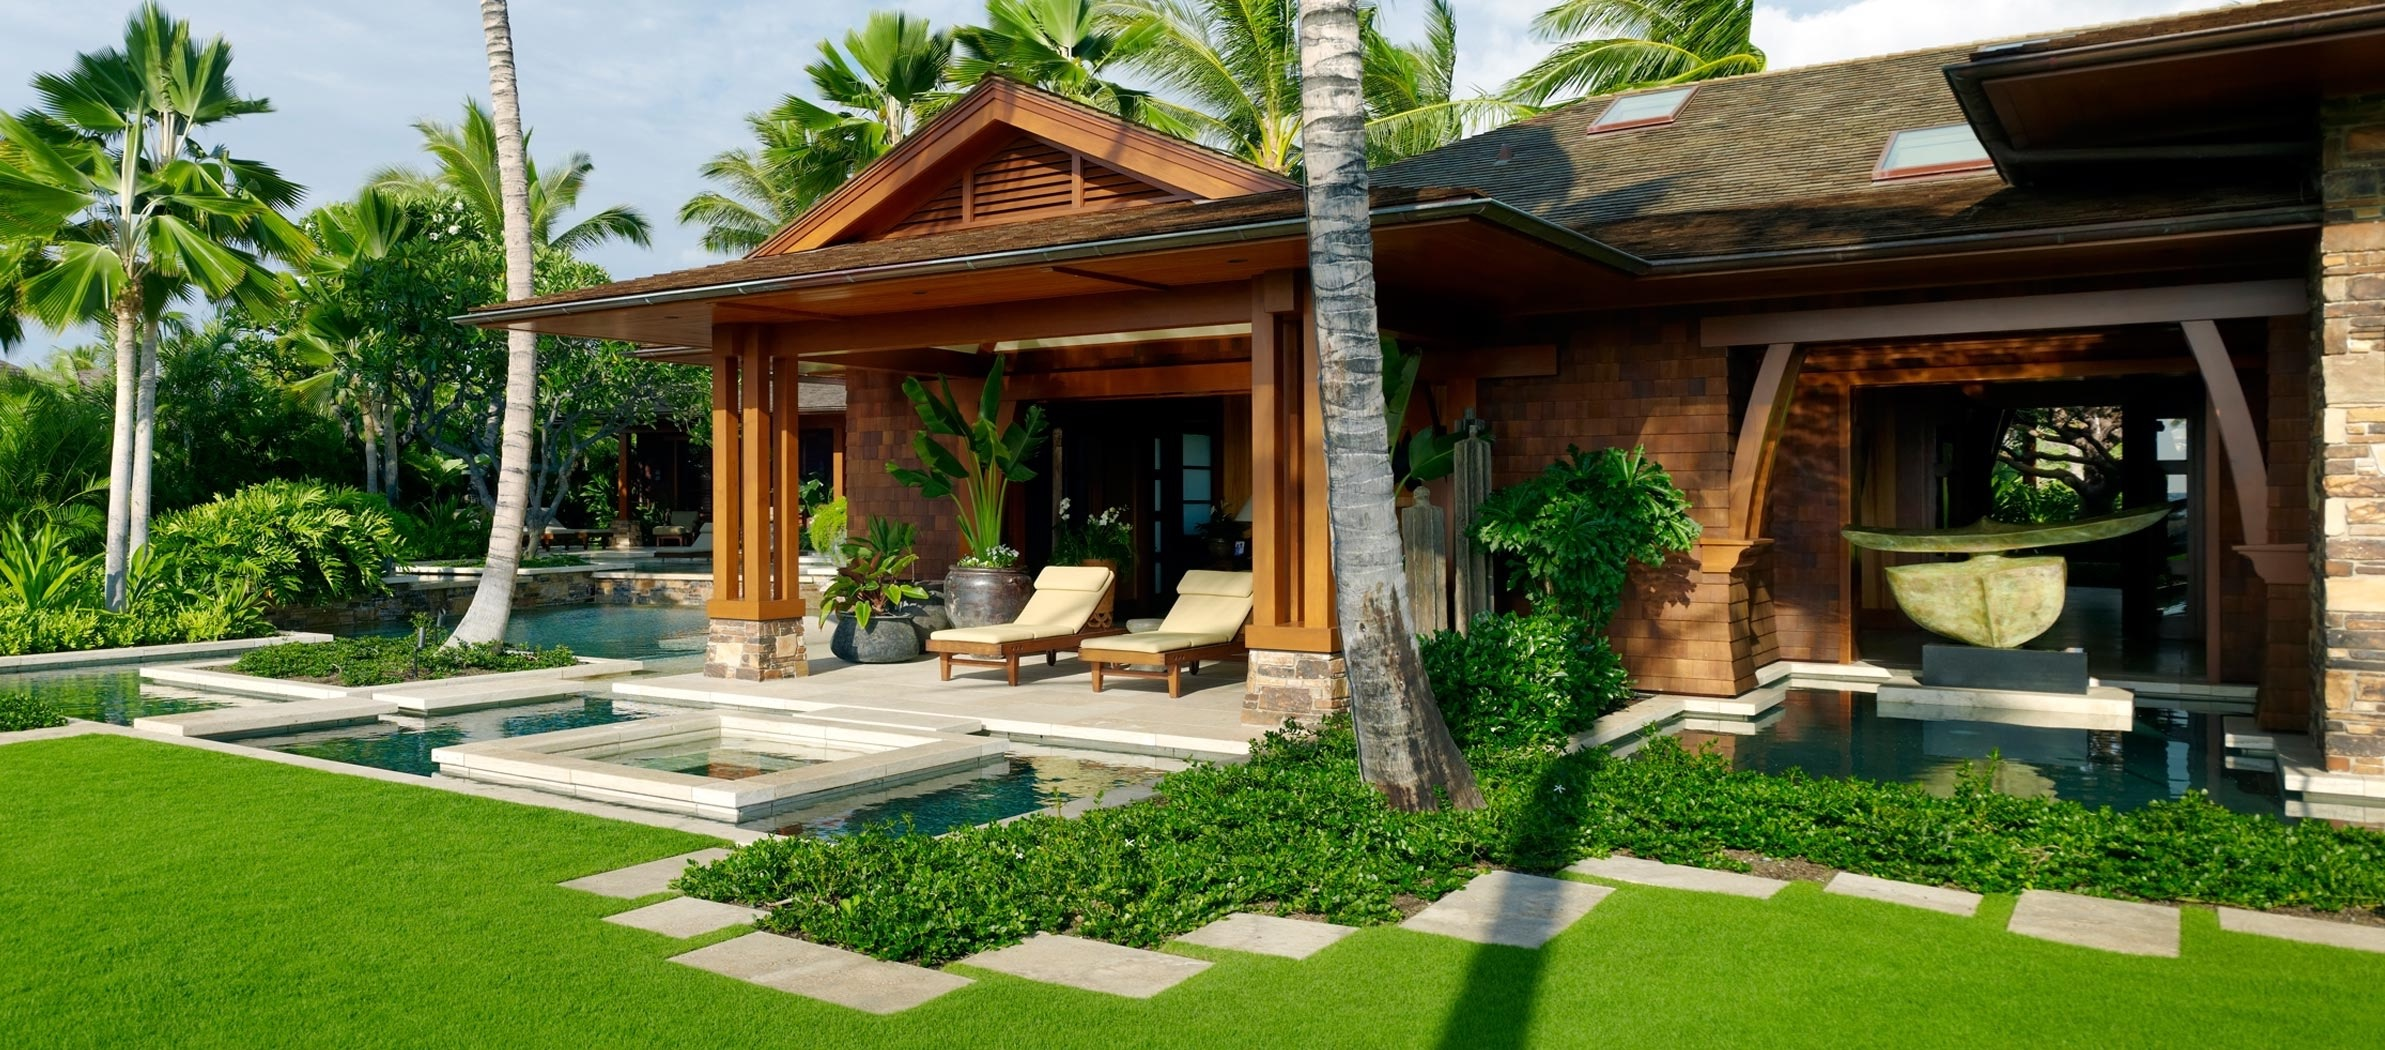 Deluxe Tropical Home Exterior (Image 11 of 33)